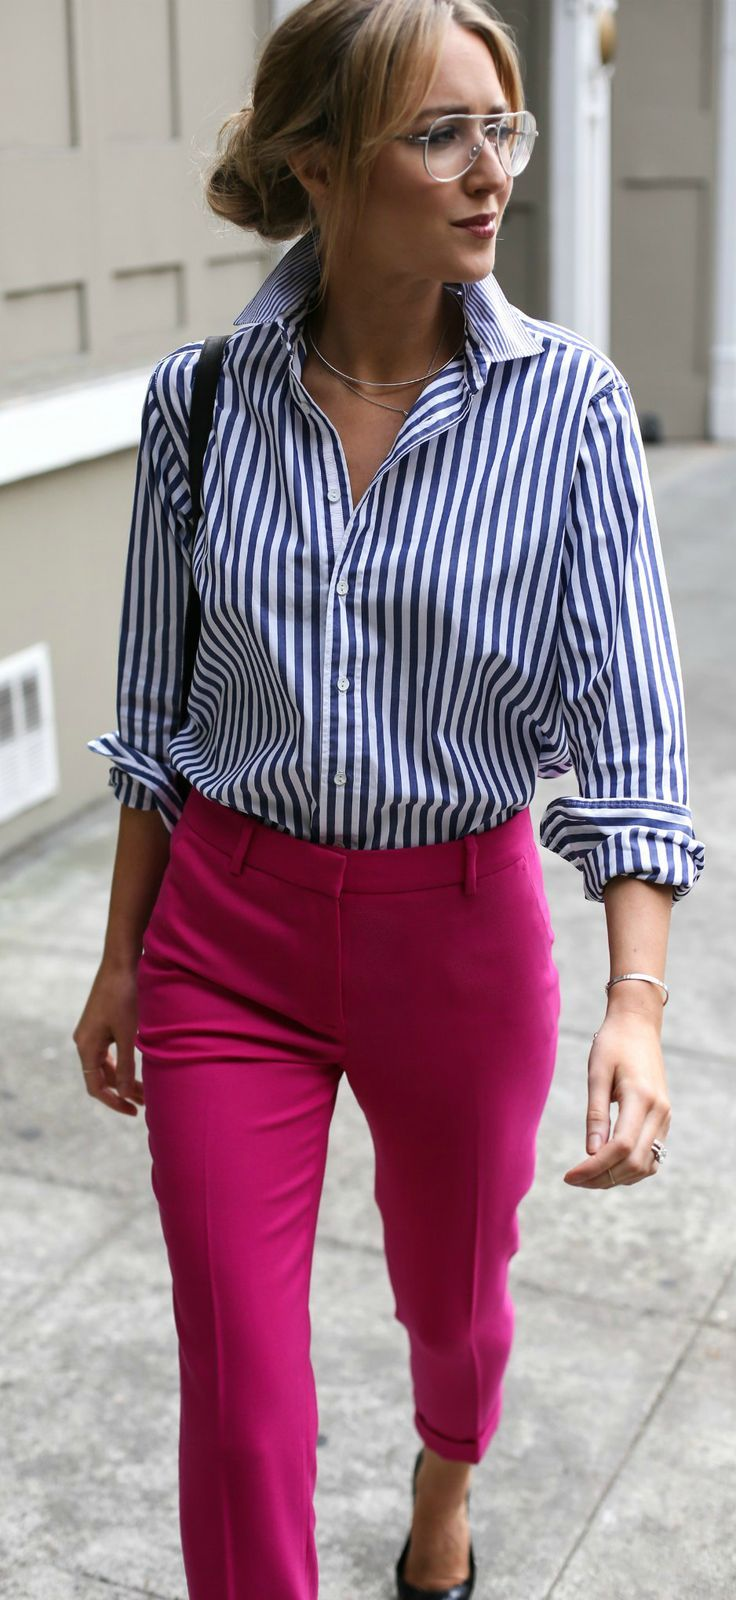 How to wear bright colors at the office with these fuchsia pink pants, navy and white striped boyfriend shirt and classic black pumps!